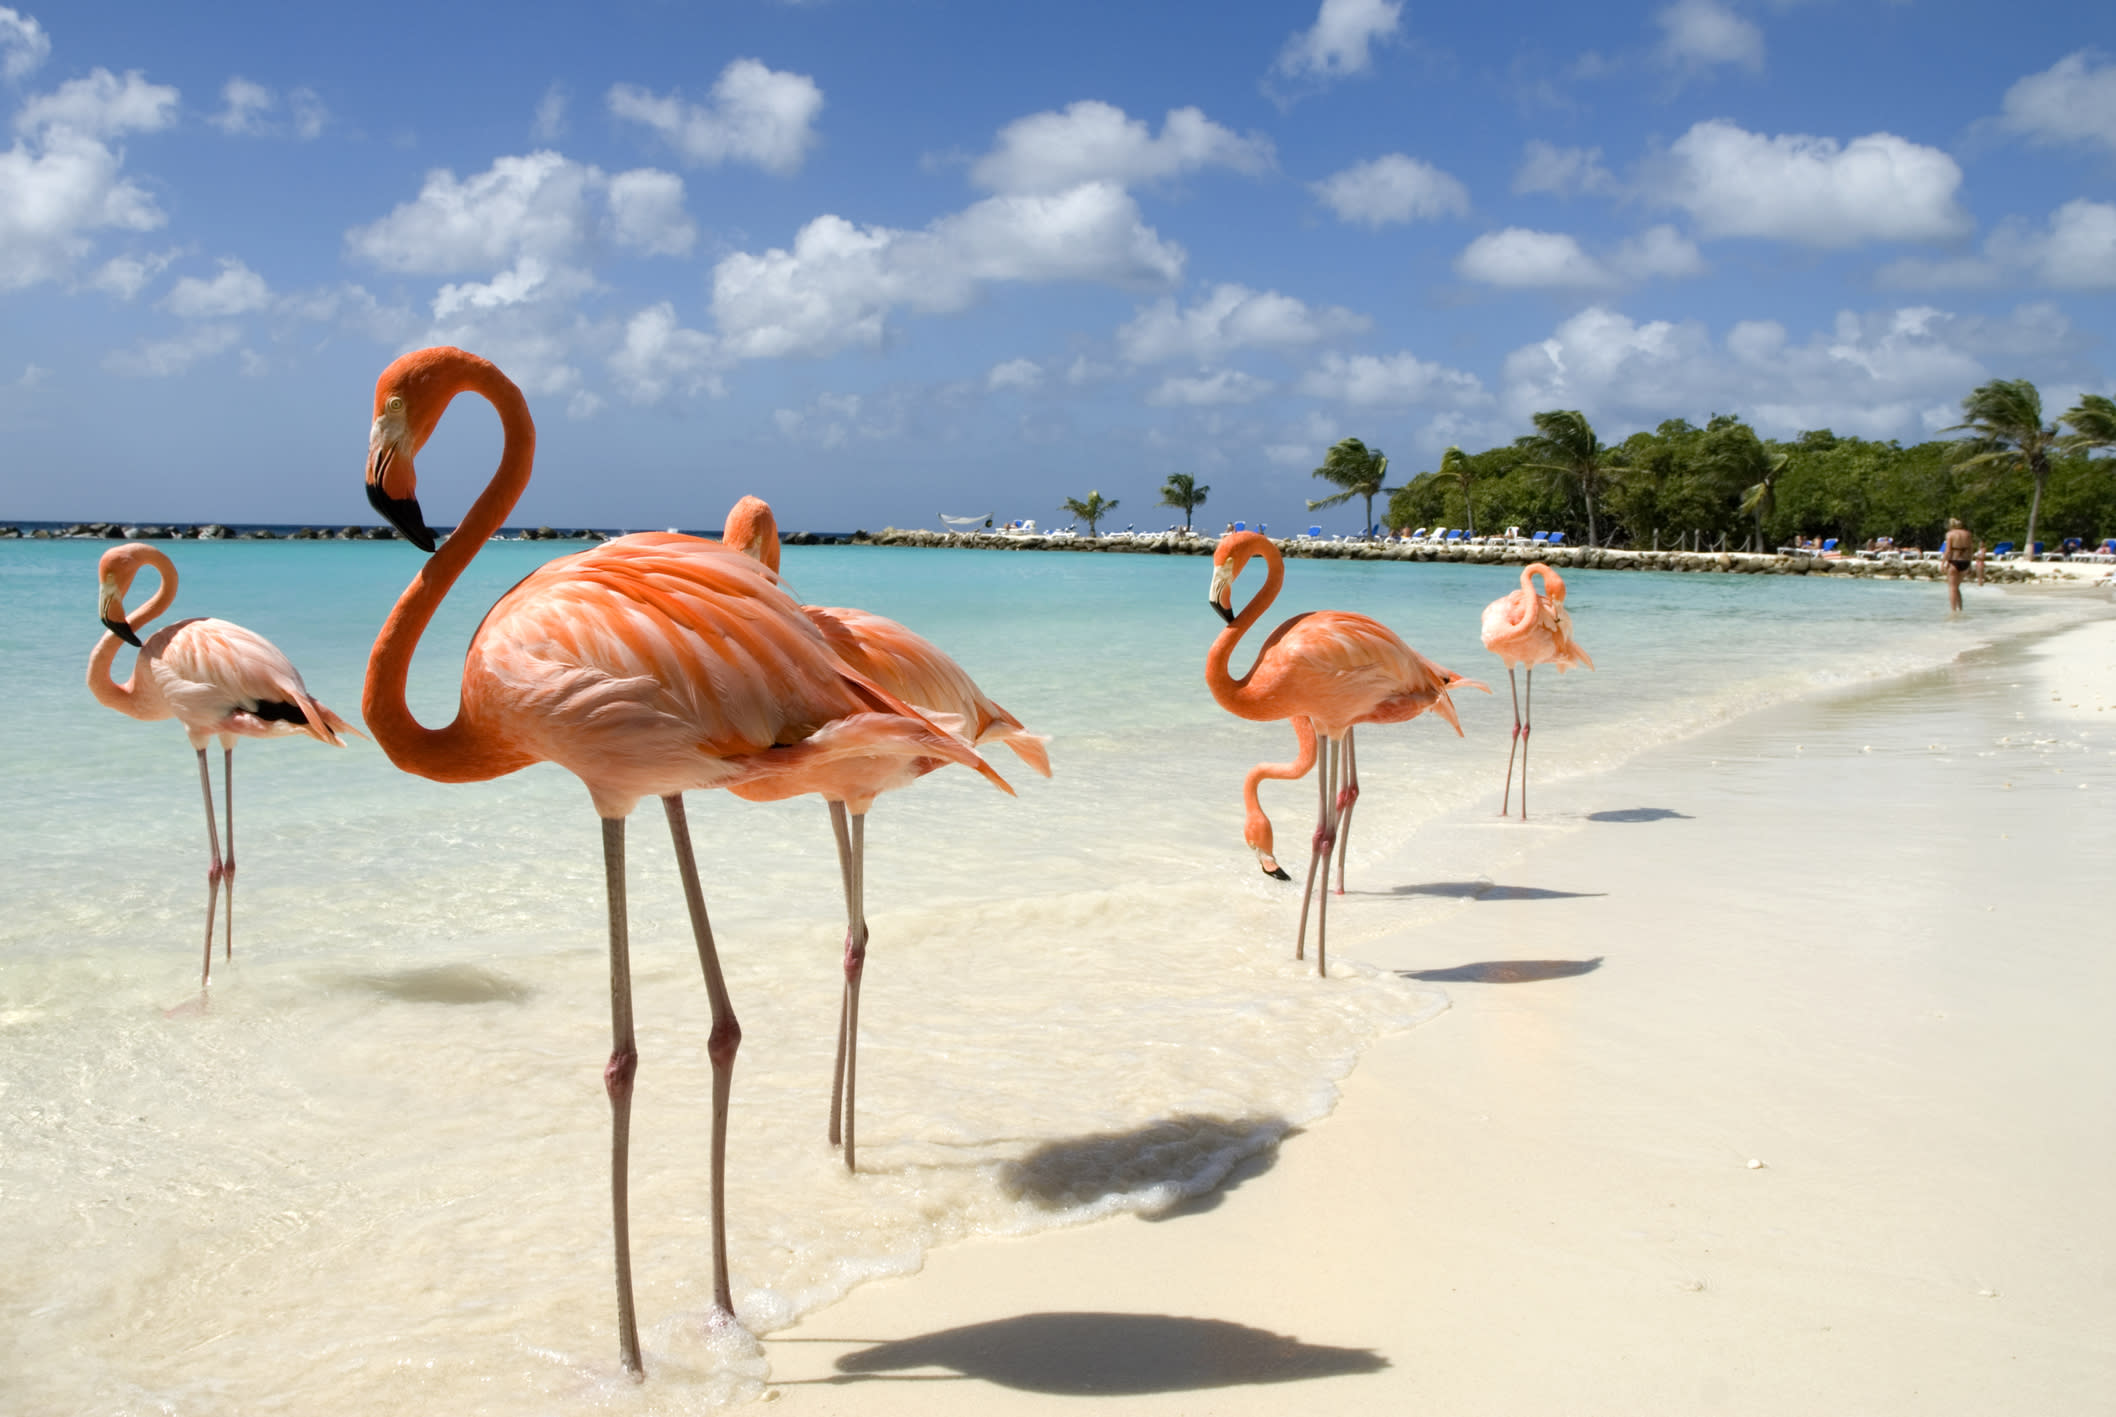 "<p>While many tropical islands are at the mercy of the weather, Aruba is special in that it's out of the hurricane zone altogether — so a sunny honeymoon is almost guaranteed, no matter what time of year you get married. Stay at the <a href=""https://www.tripadvisor.com/Hotel_Review-g147249-d149892-Reviews-Hyatt_Regency_Aruba_Resort_and_Casino-Palm_Eagle_Beach_Aruba.html"" rel=""nofollow noopener"" target=""_blank"" data-ylk=""slk:Hyatt Regency Aruba Resort Spa and Casino"" class=""link rapid-noclick-resp"">Hyatt Regency Aruba Resort Spa and Casino</a>, where you can relax in a <a href=""https://aruba.regency.hyatt.com/en/hotel/activities.html"" rel=""nofollow noopener"" target=""_blank"" data-ylk=""slk:reserved private hut"" class=""link rapid-noclick-resp"">reserved private hut</a> on the white sand beach. You're also close to the main shopping district if you want a little more action.</p>"